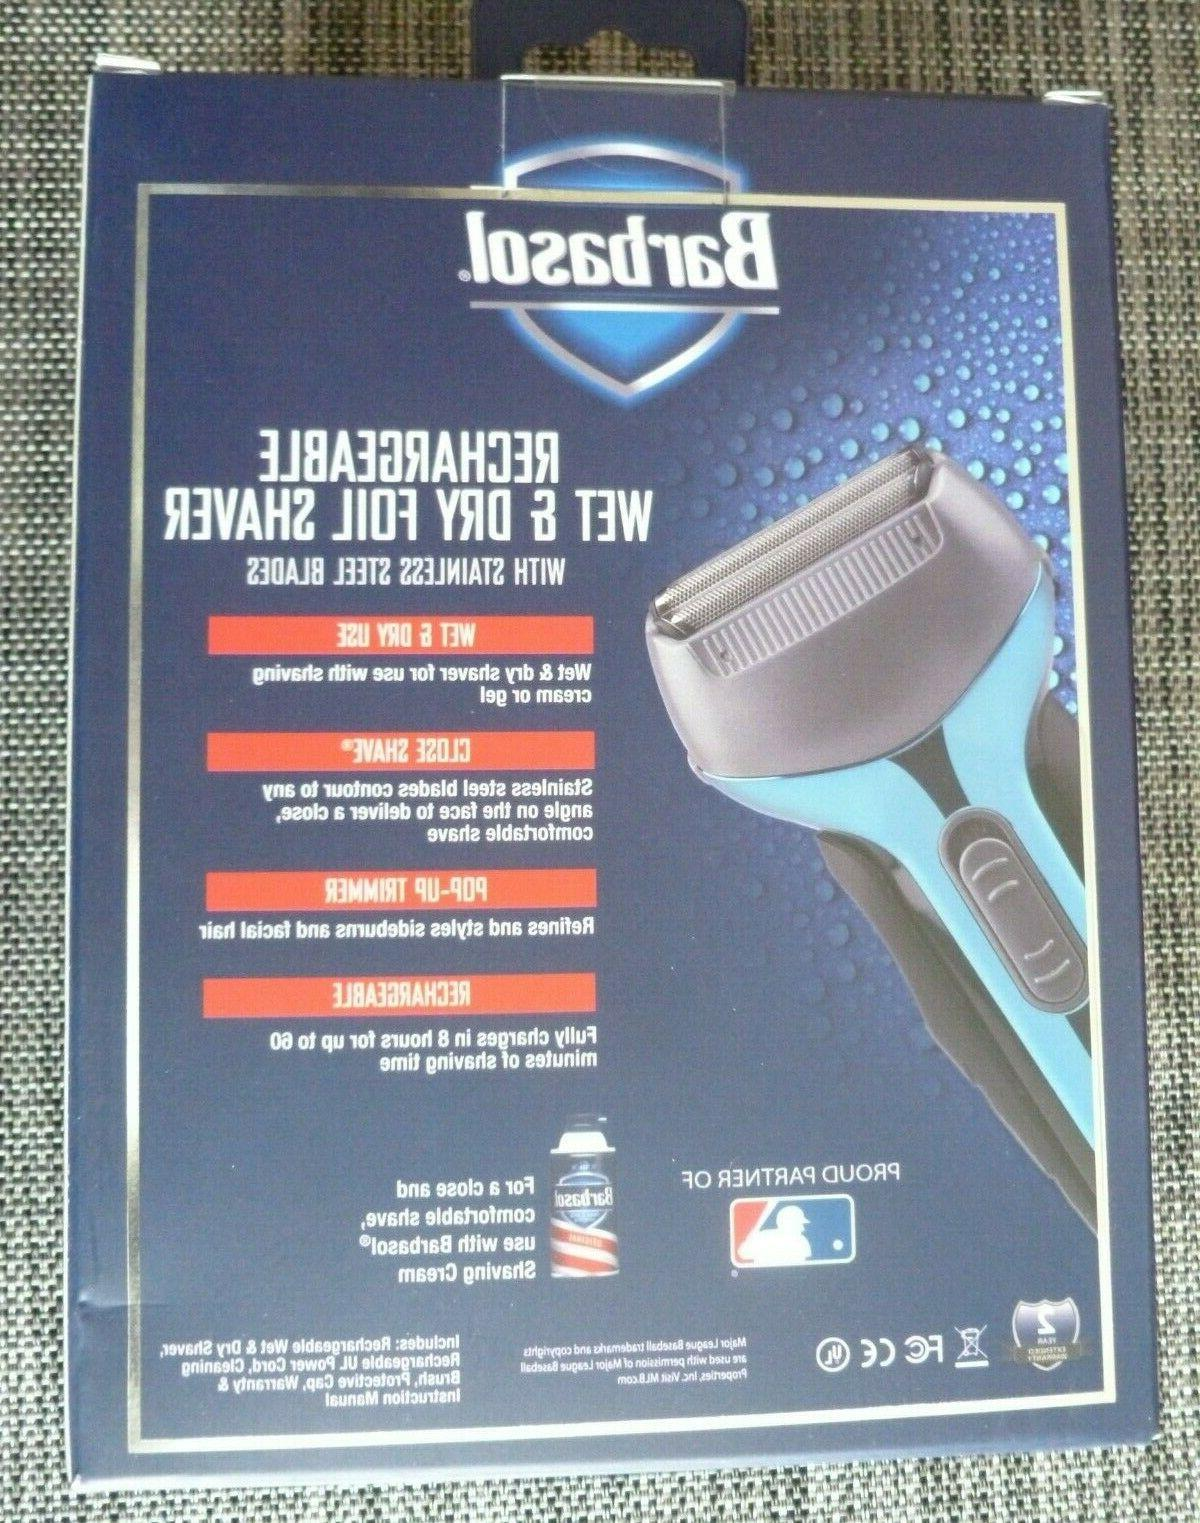 Wet & Dry, Rechargeable, Foil w/Trimmer